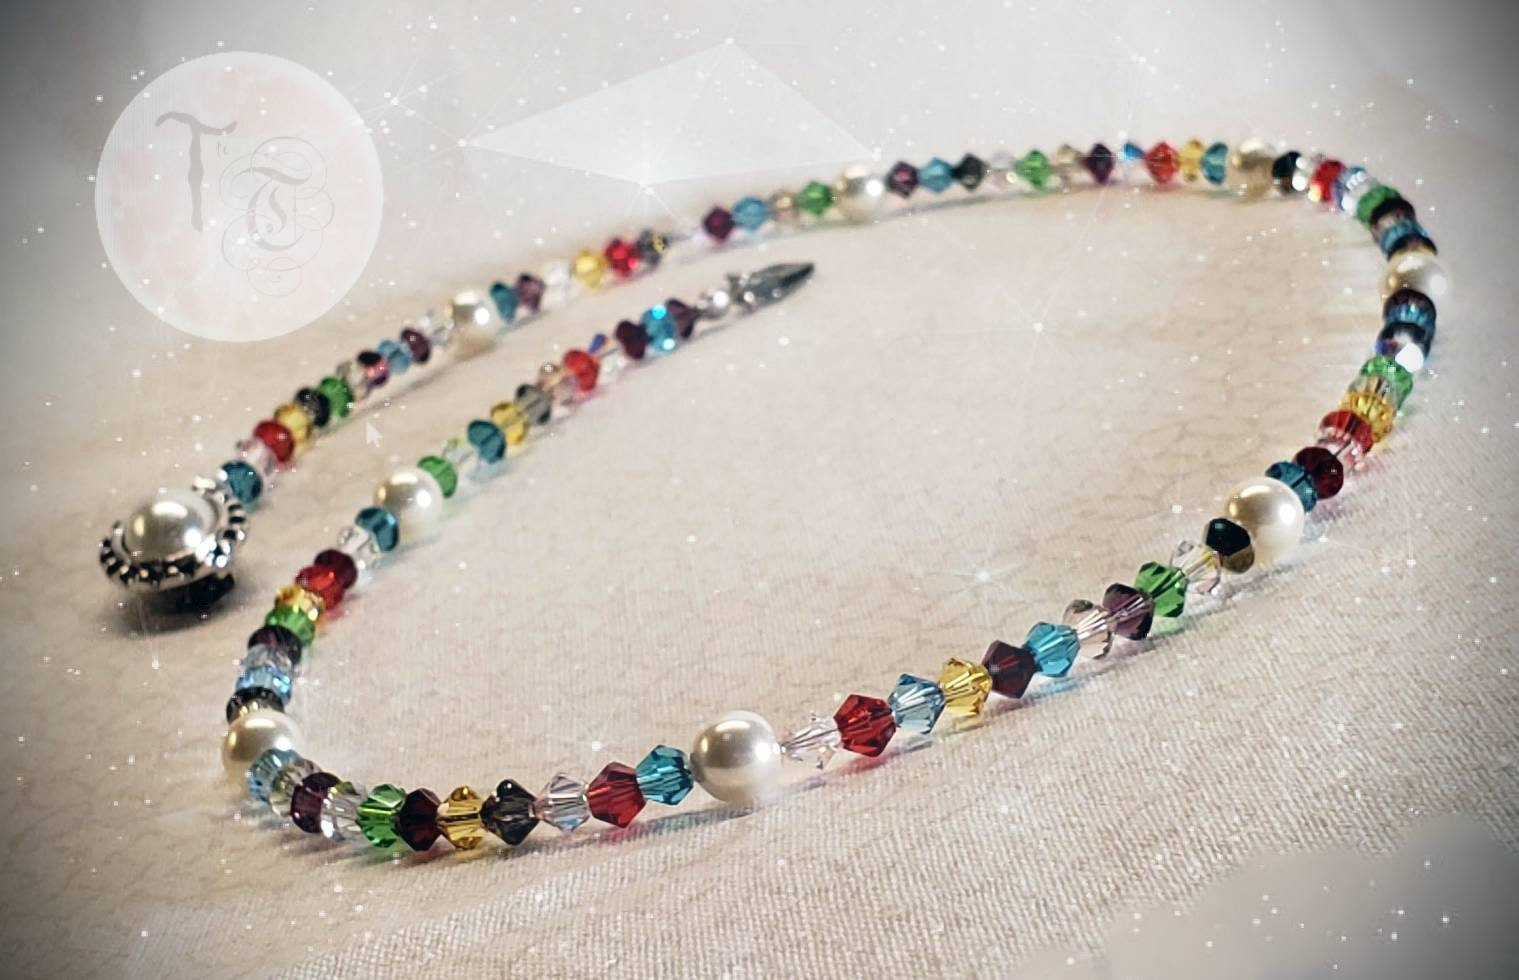 PRICE REDUCED! Swarovski Crystal Necklace Colorful Splash of Shimmering Swarovski  Crystals and Pearls Two Styles Available Gift Idea 1eec57e37